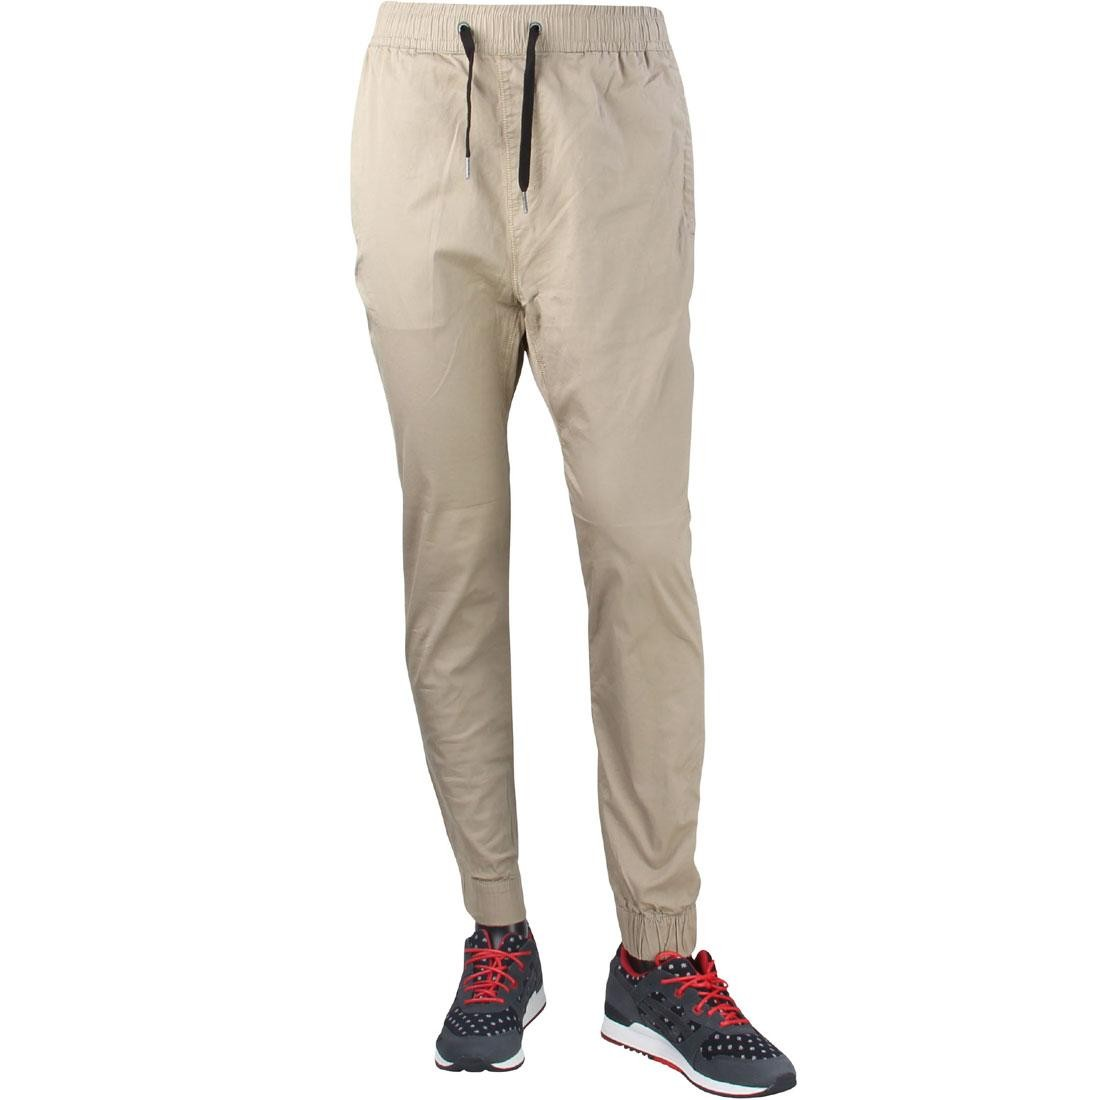 Zanerobe Men Montage Dropshot Jogger Pants (tan)